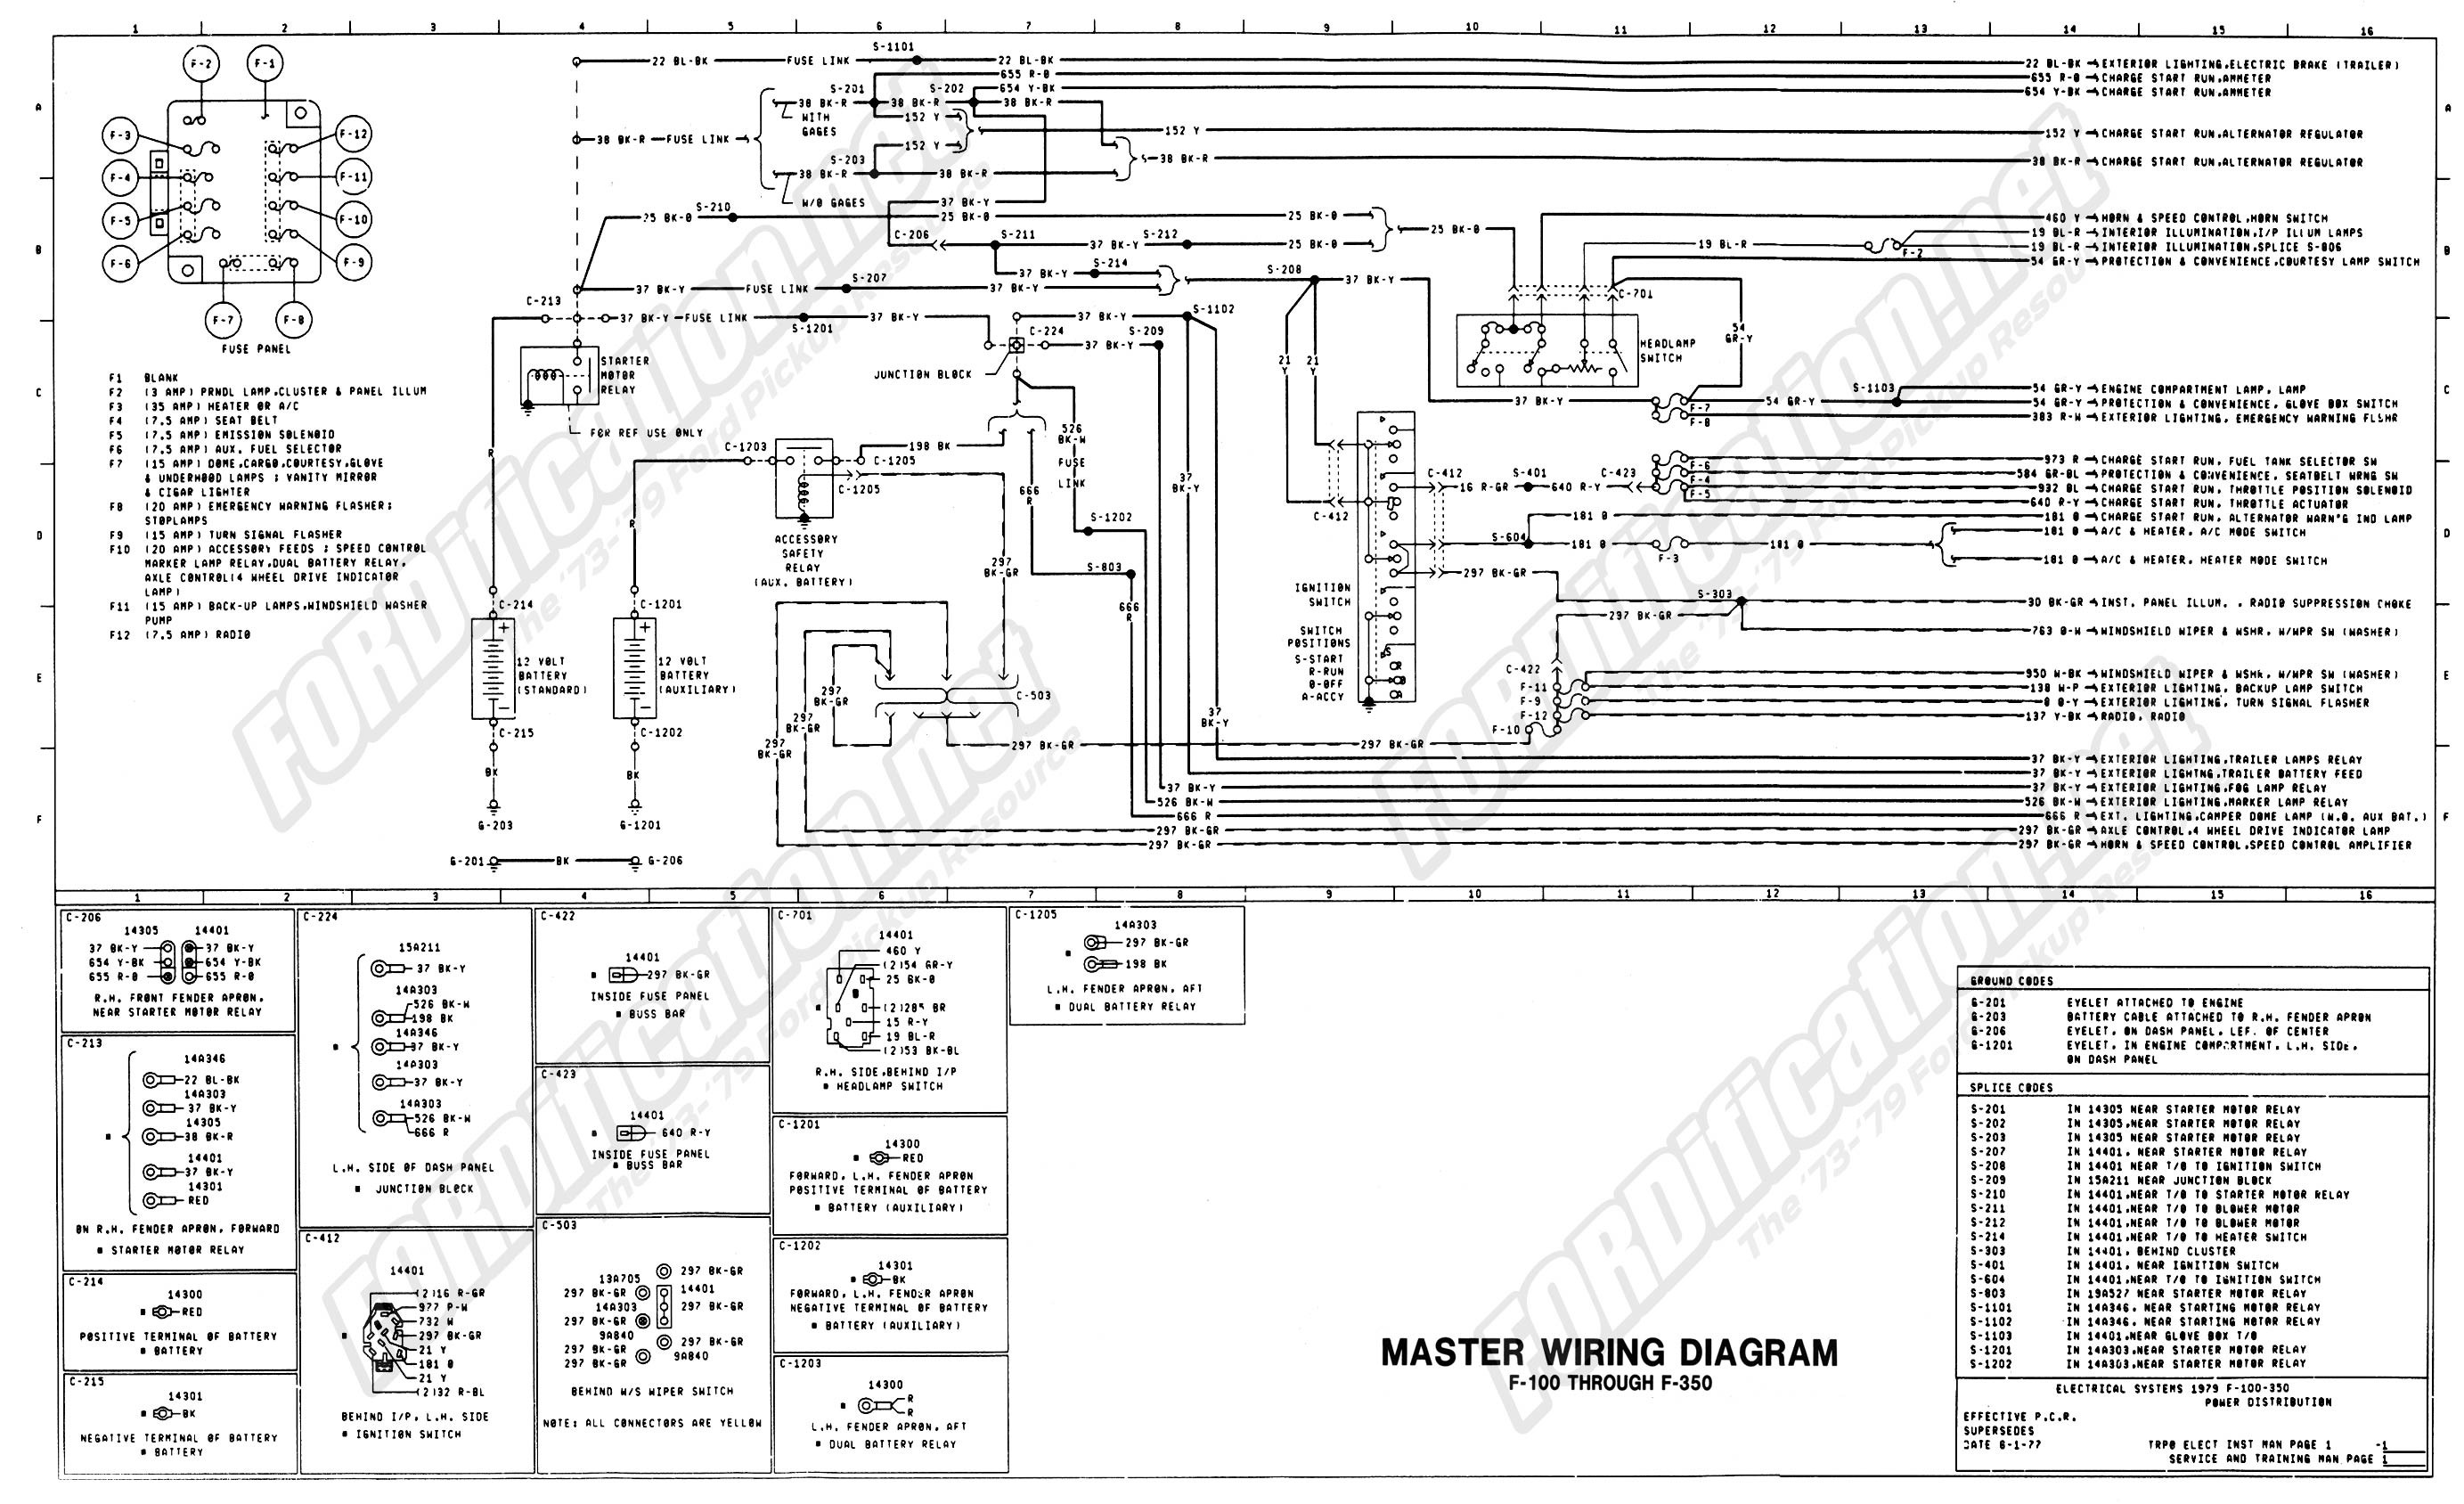 2008 Ford Escape Engine Diagram 02 Wiring Radio Trailer 79 F150 Solenoid Truck Enthusiasts Forums Of